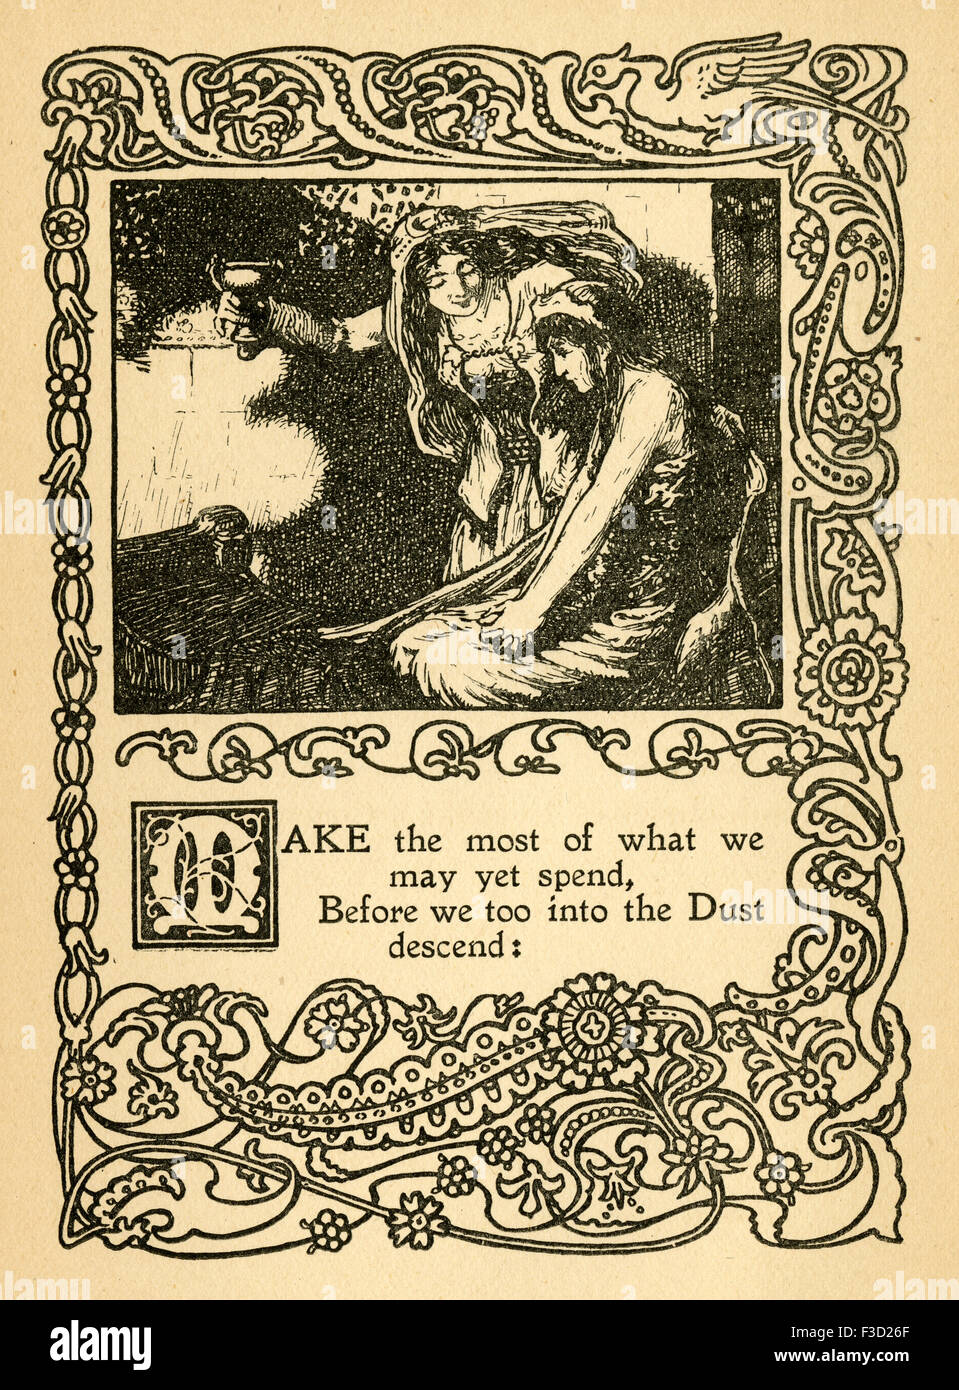 Antique 1904 illustration from The Rubaiyat of Omar Khayyam. 'Make the most of what we may yet spend, Before - Stock Image